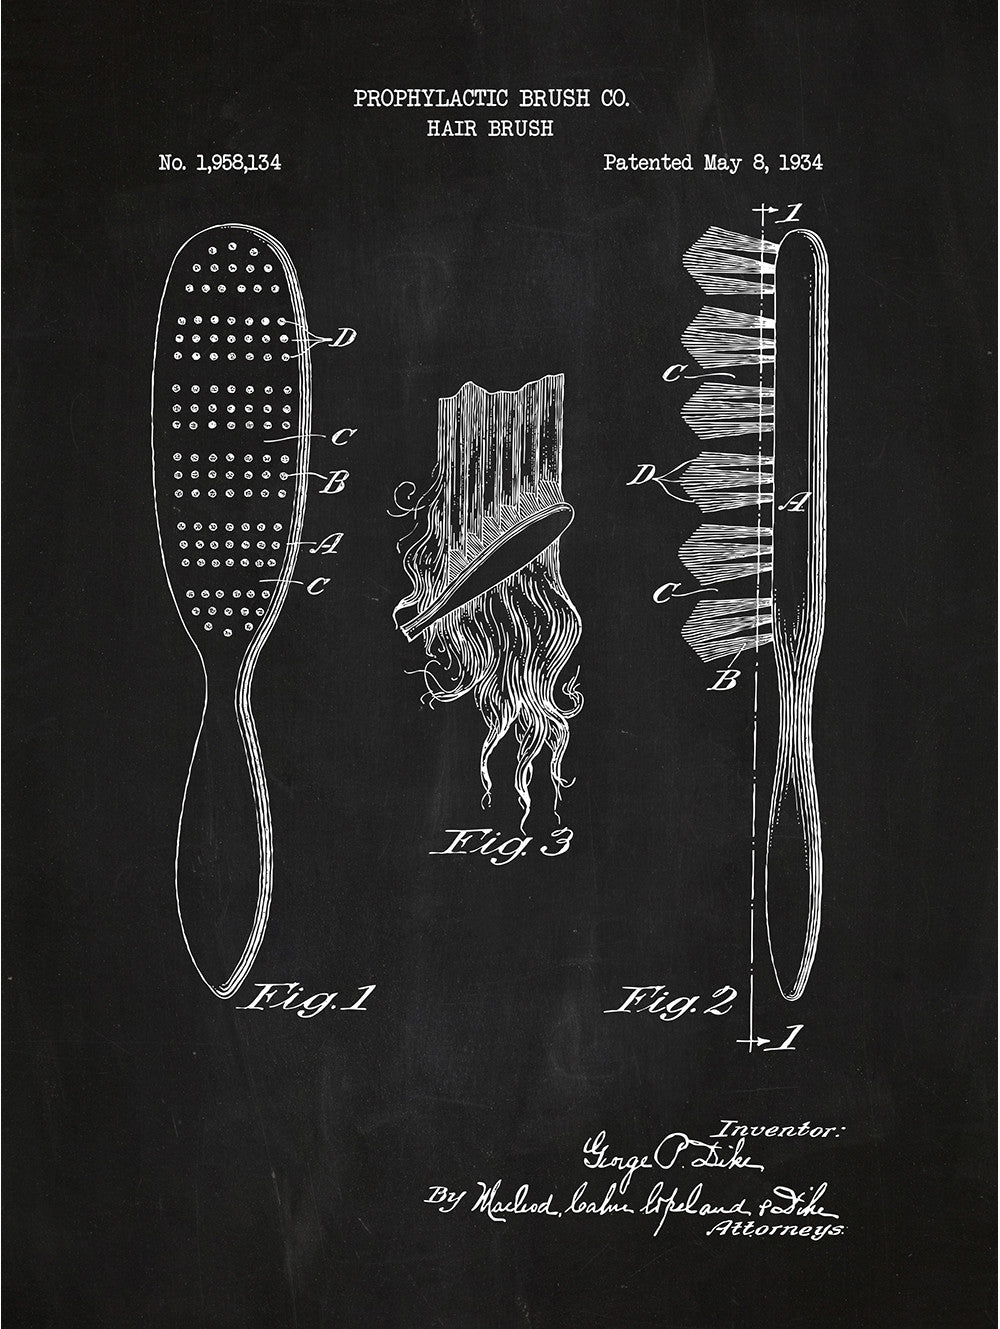 Hair Brush - Prophylactic Co. - 1934